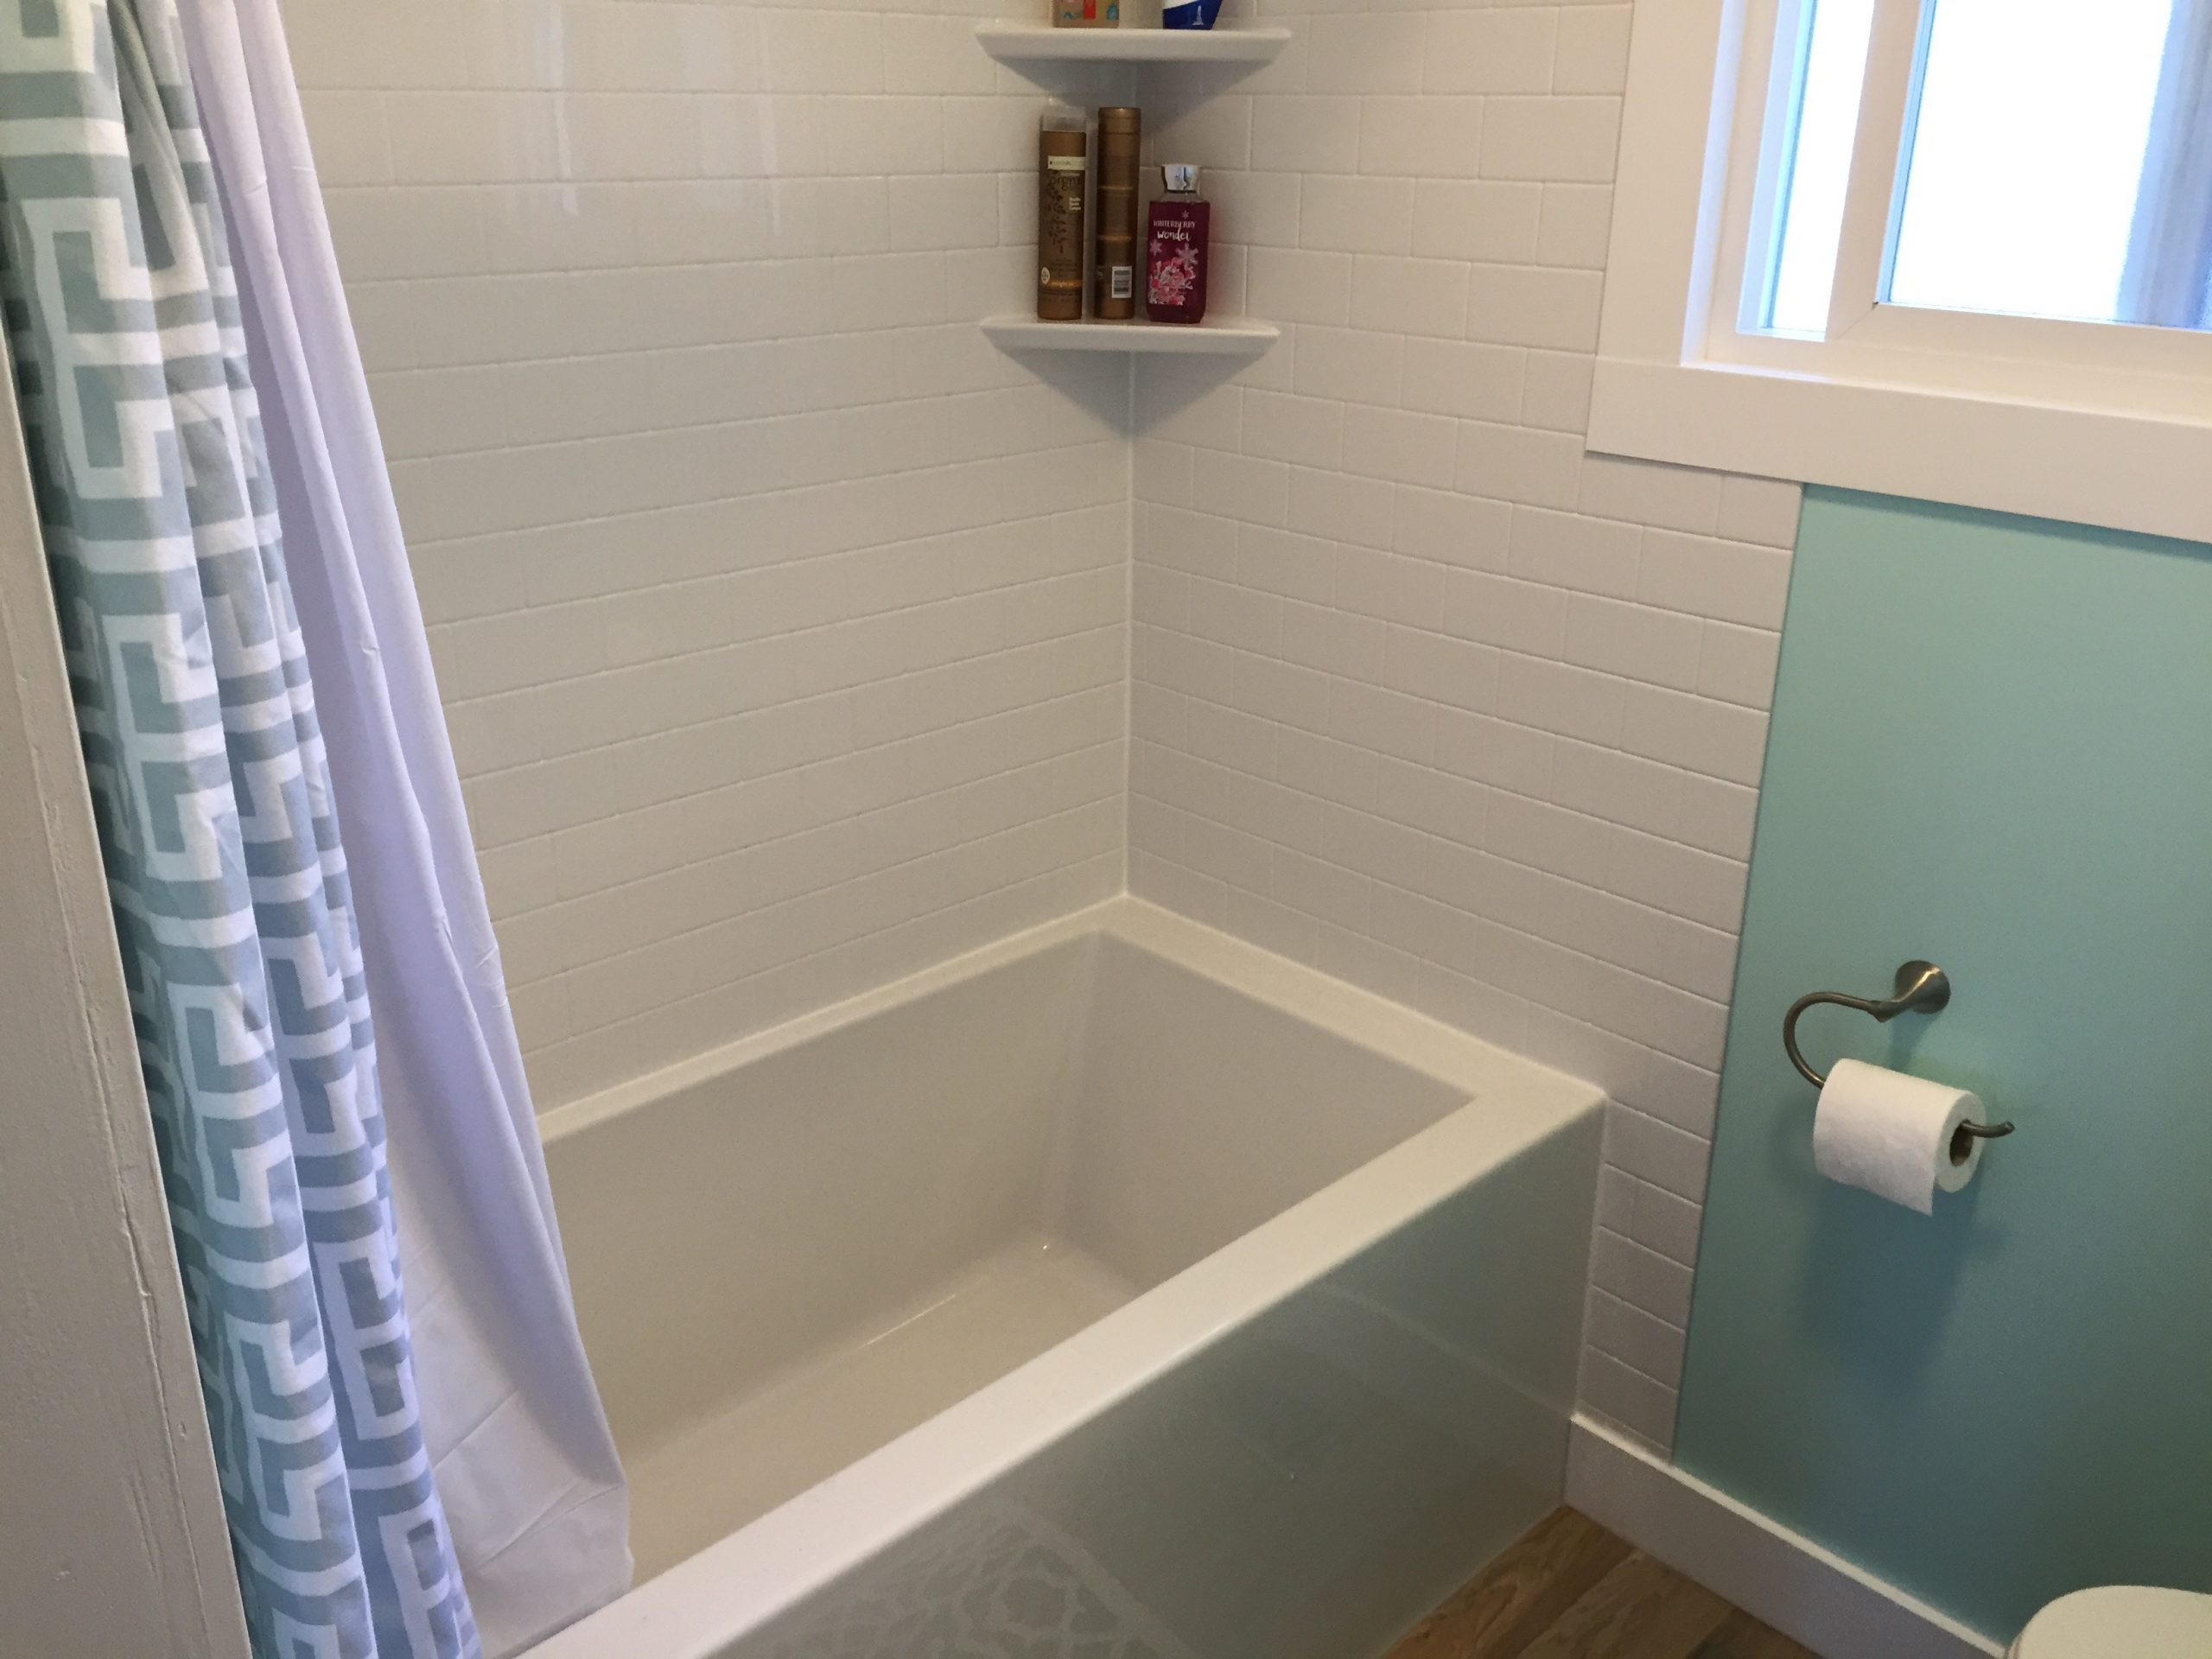 Tub Reglaze Tile Walls by Cassidy Dahl, Dahl Tubs, Prince George